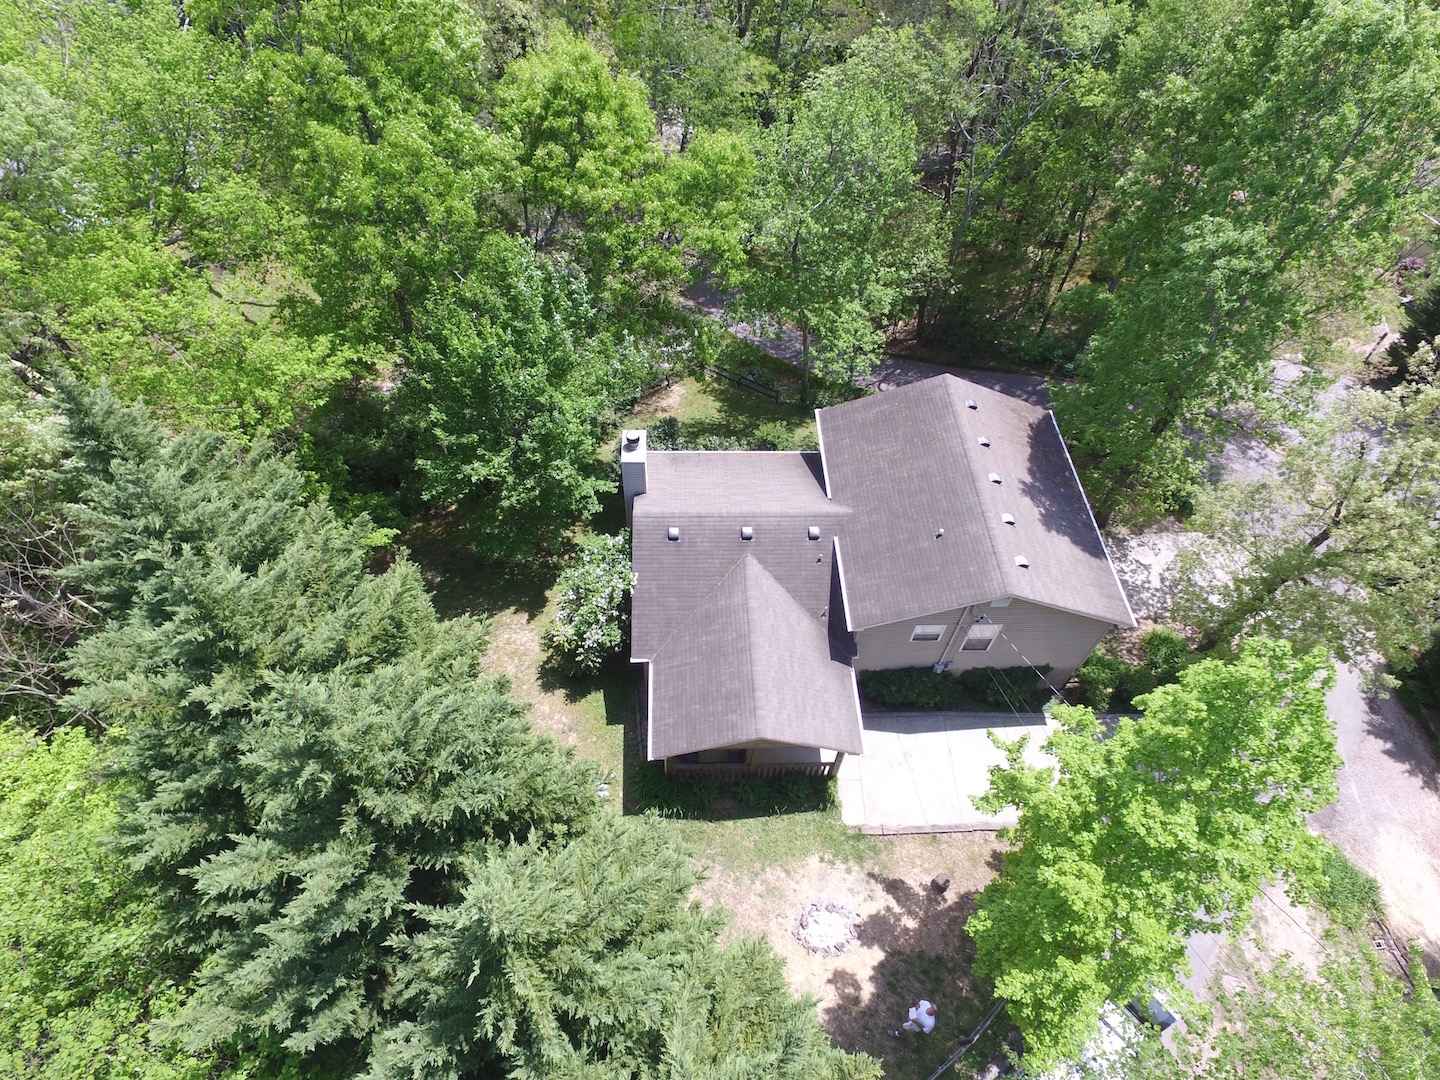 recarea cabin webb kootenai forest national lookout cabins rentals mountain